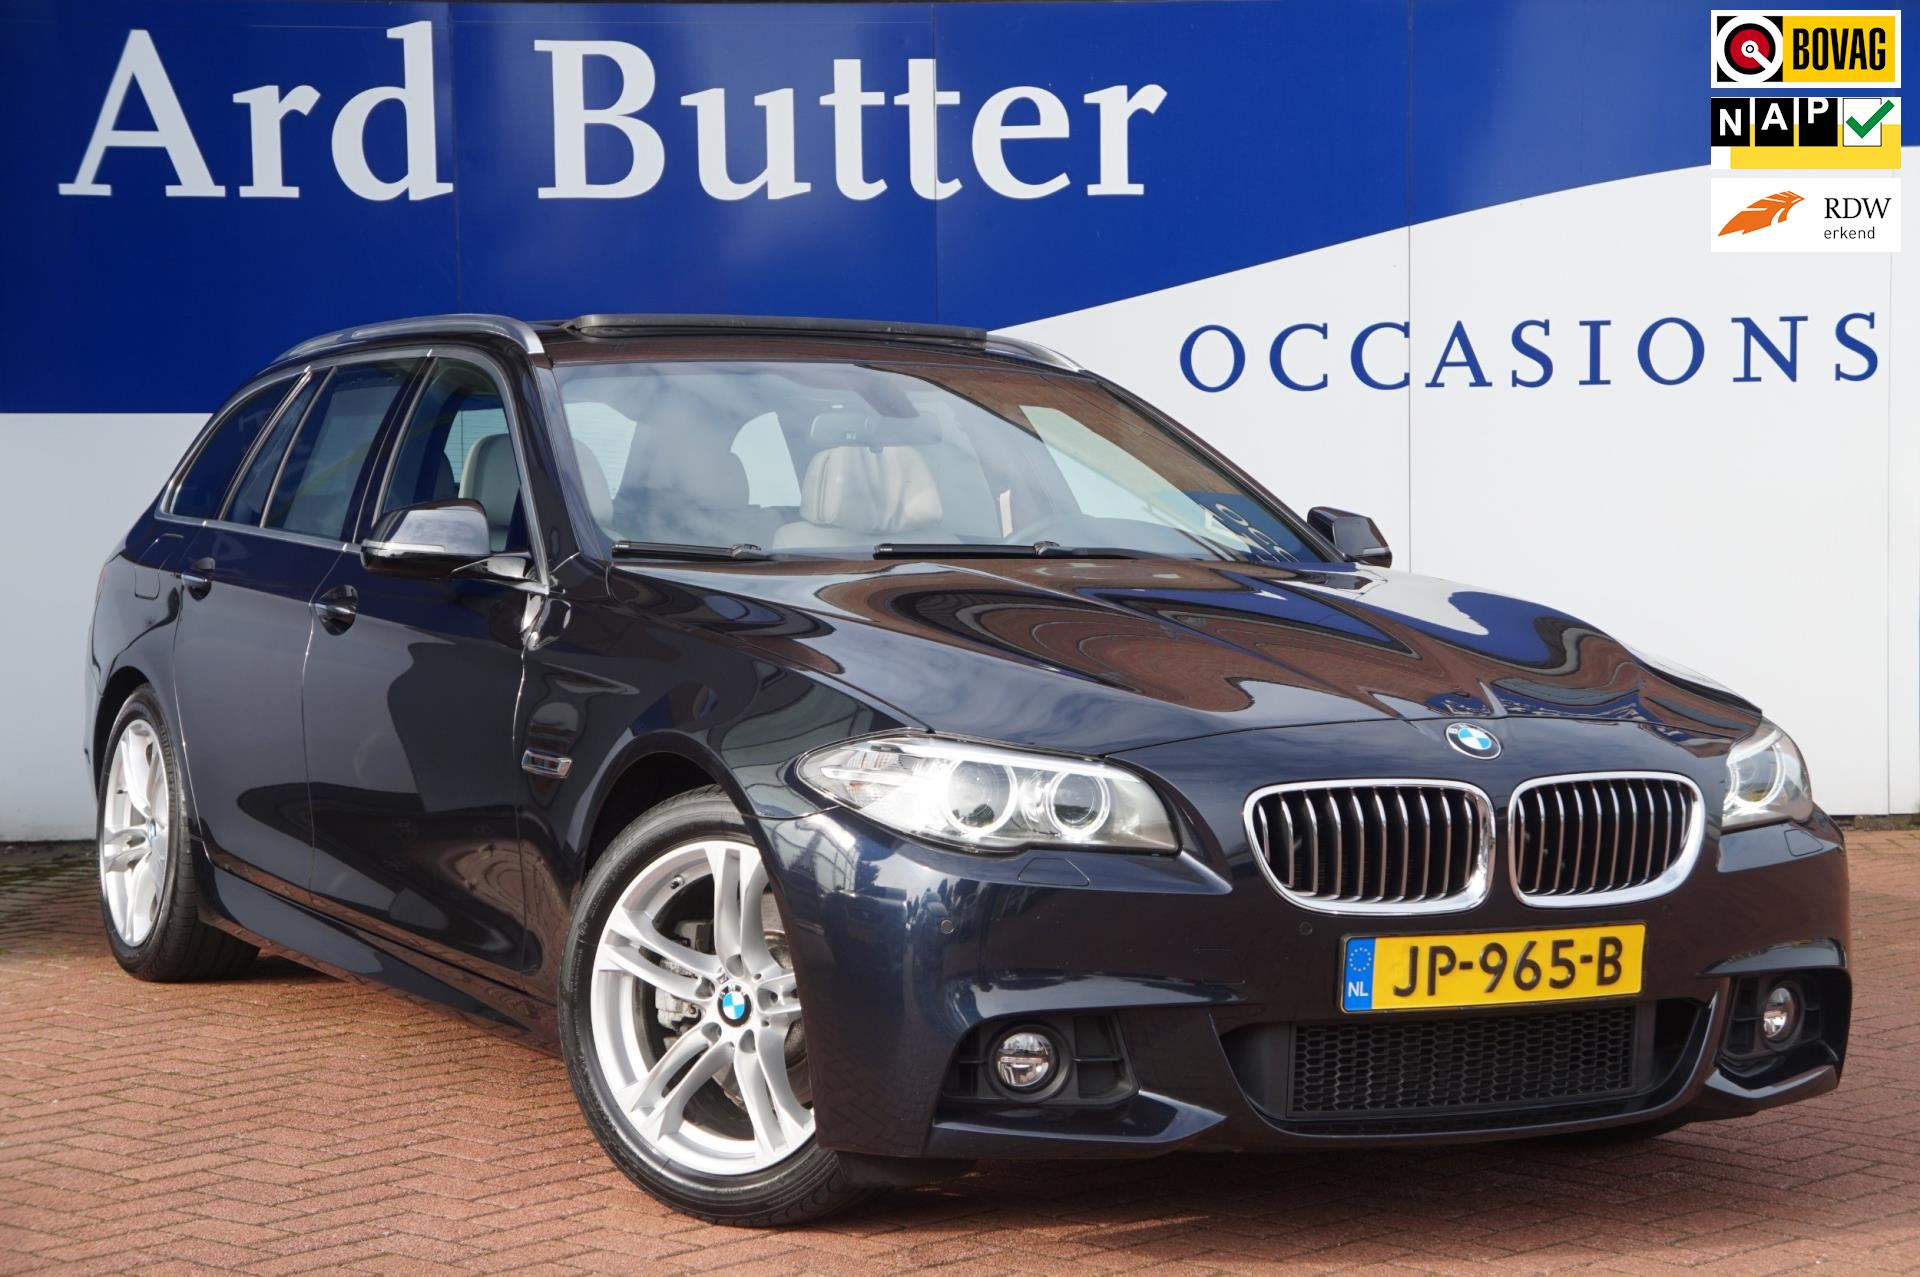 BMW 5-serie Touring occasion - Autobedrijf Ard Butter B.V.